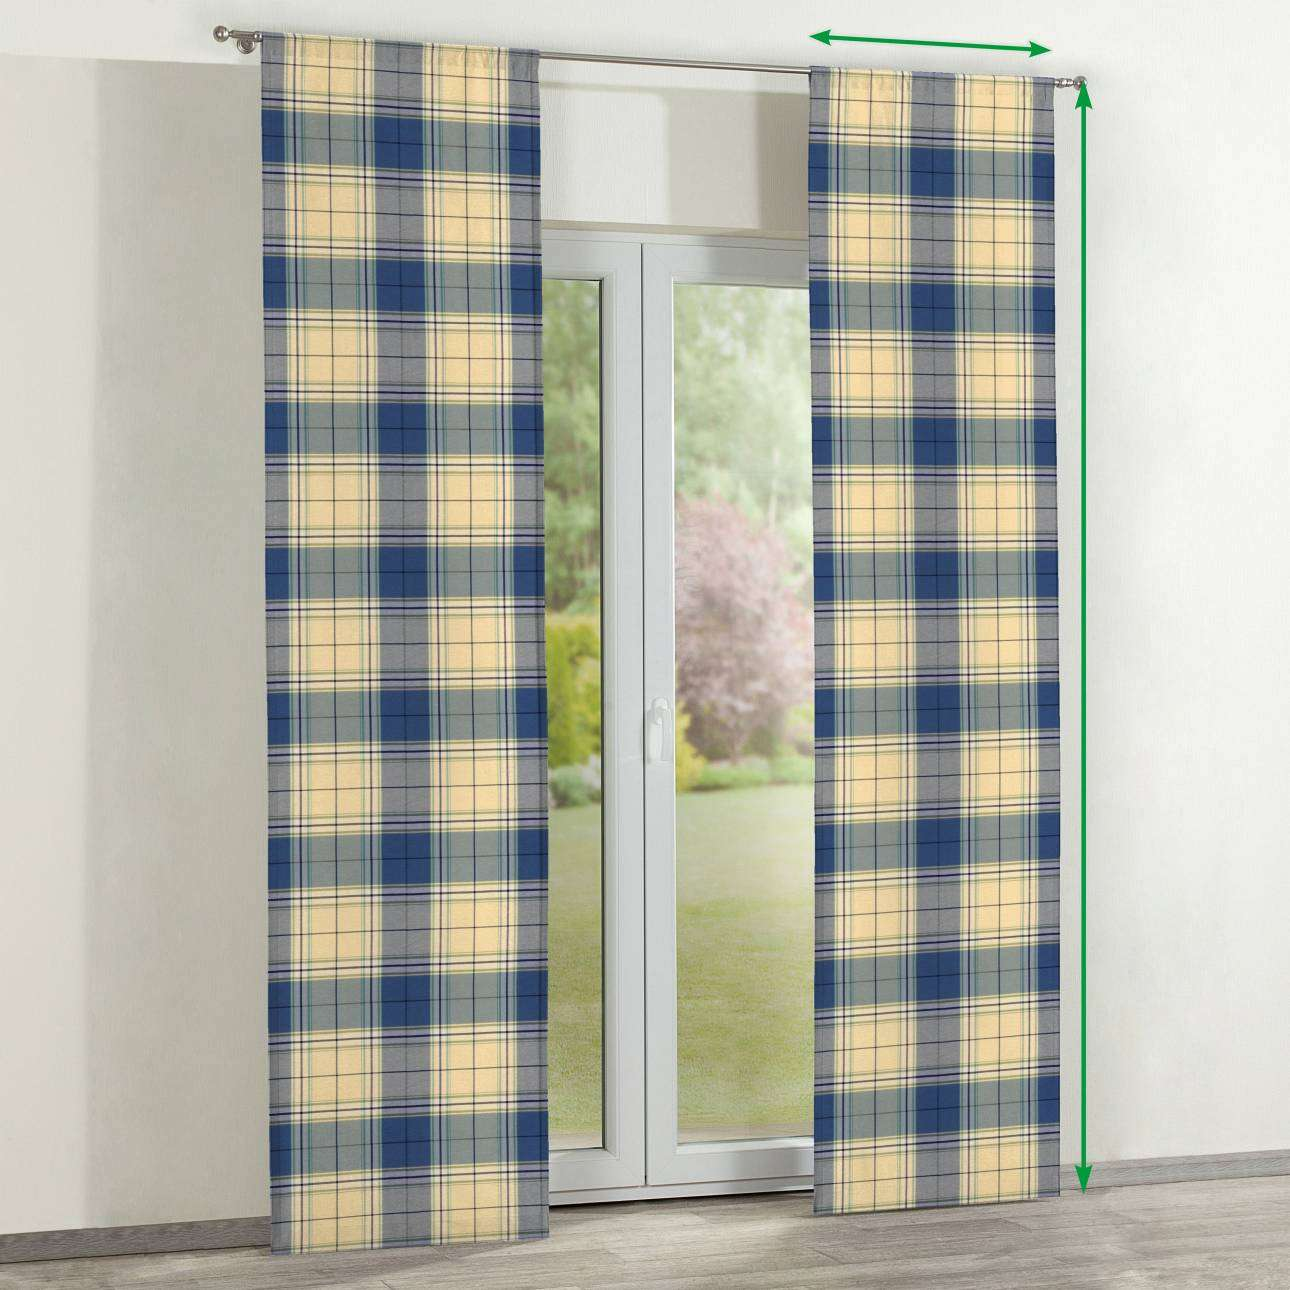 Slot panel curtains – Set of 2 in collection Bristol, fabric: 125-69